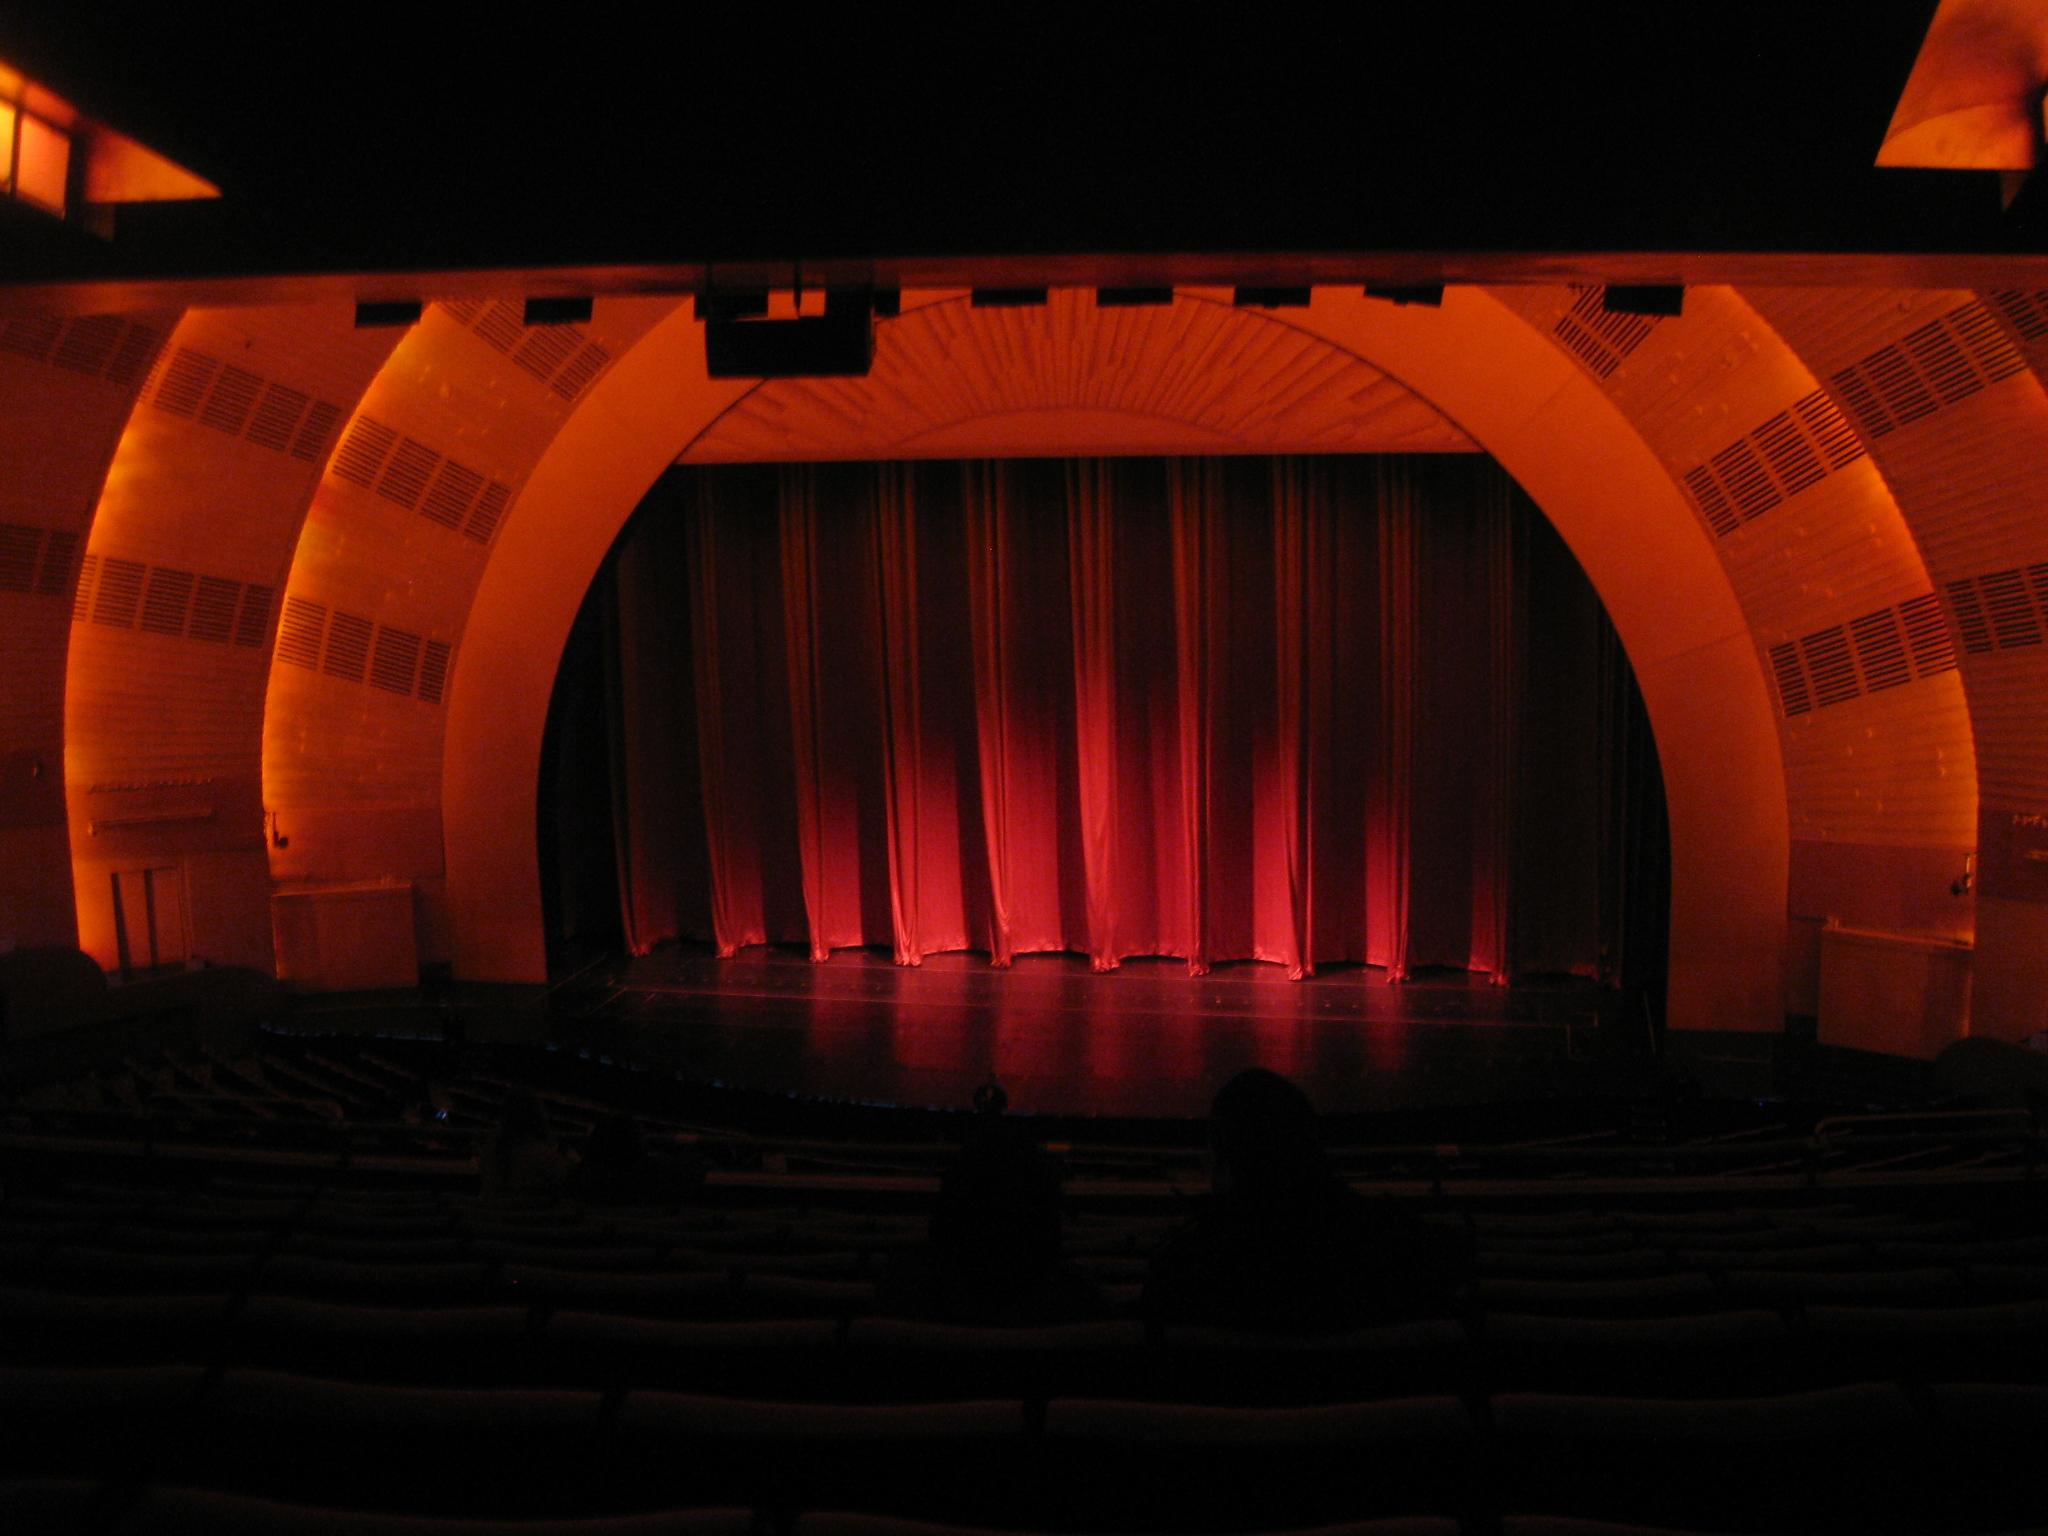 BWFubiBjZW50ZXIgc2VhdGluZyBjaGFydA additionally Ohny New Amsterdam Theater Tour further Seat 303 as well Walt Whitman Theatre At Brooklyn College Tickets further Kings Theatre Soft Opening. on orchestra seats at radio city